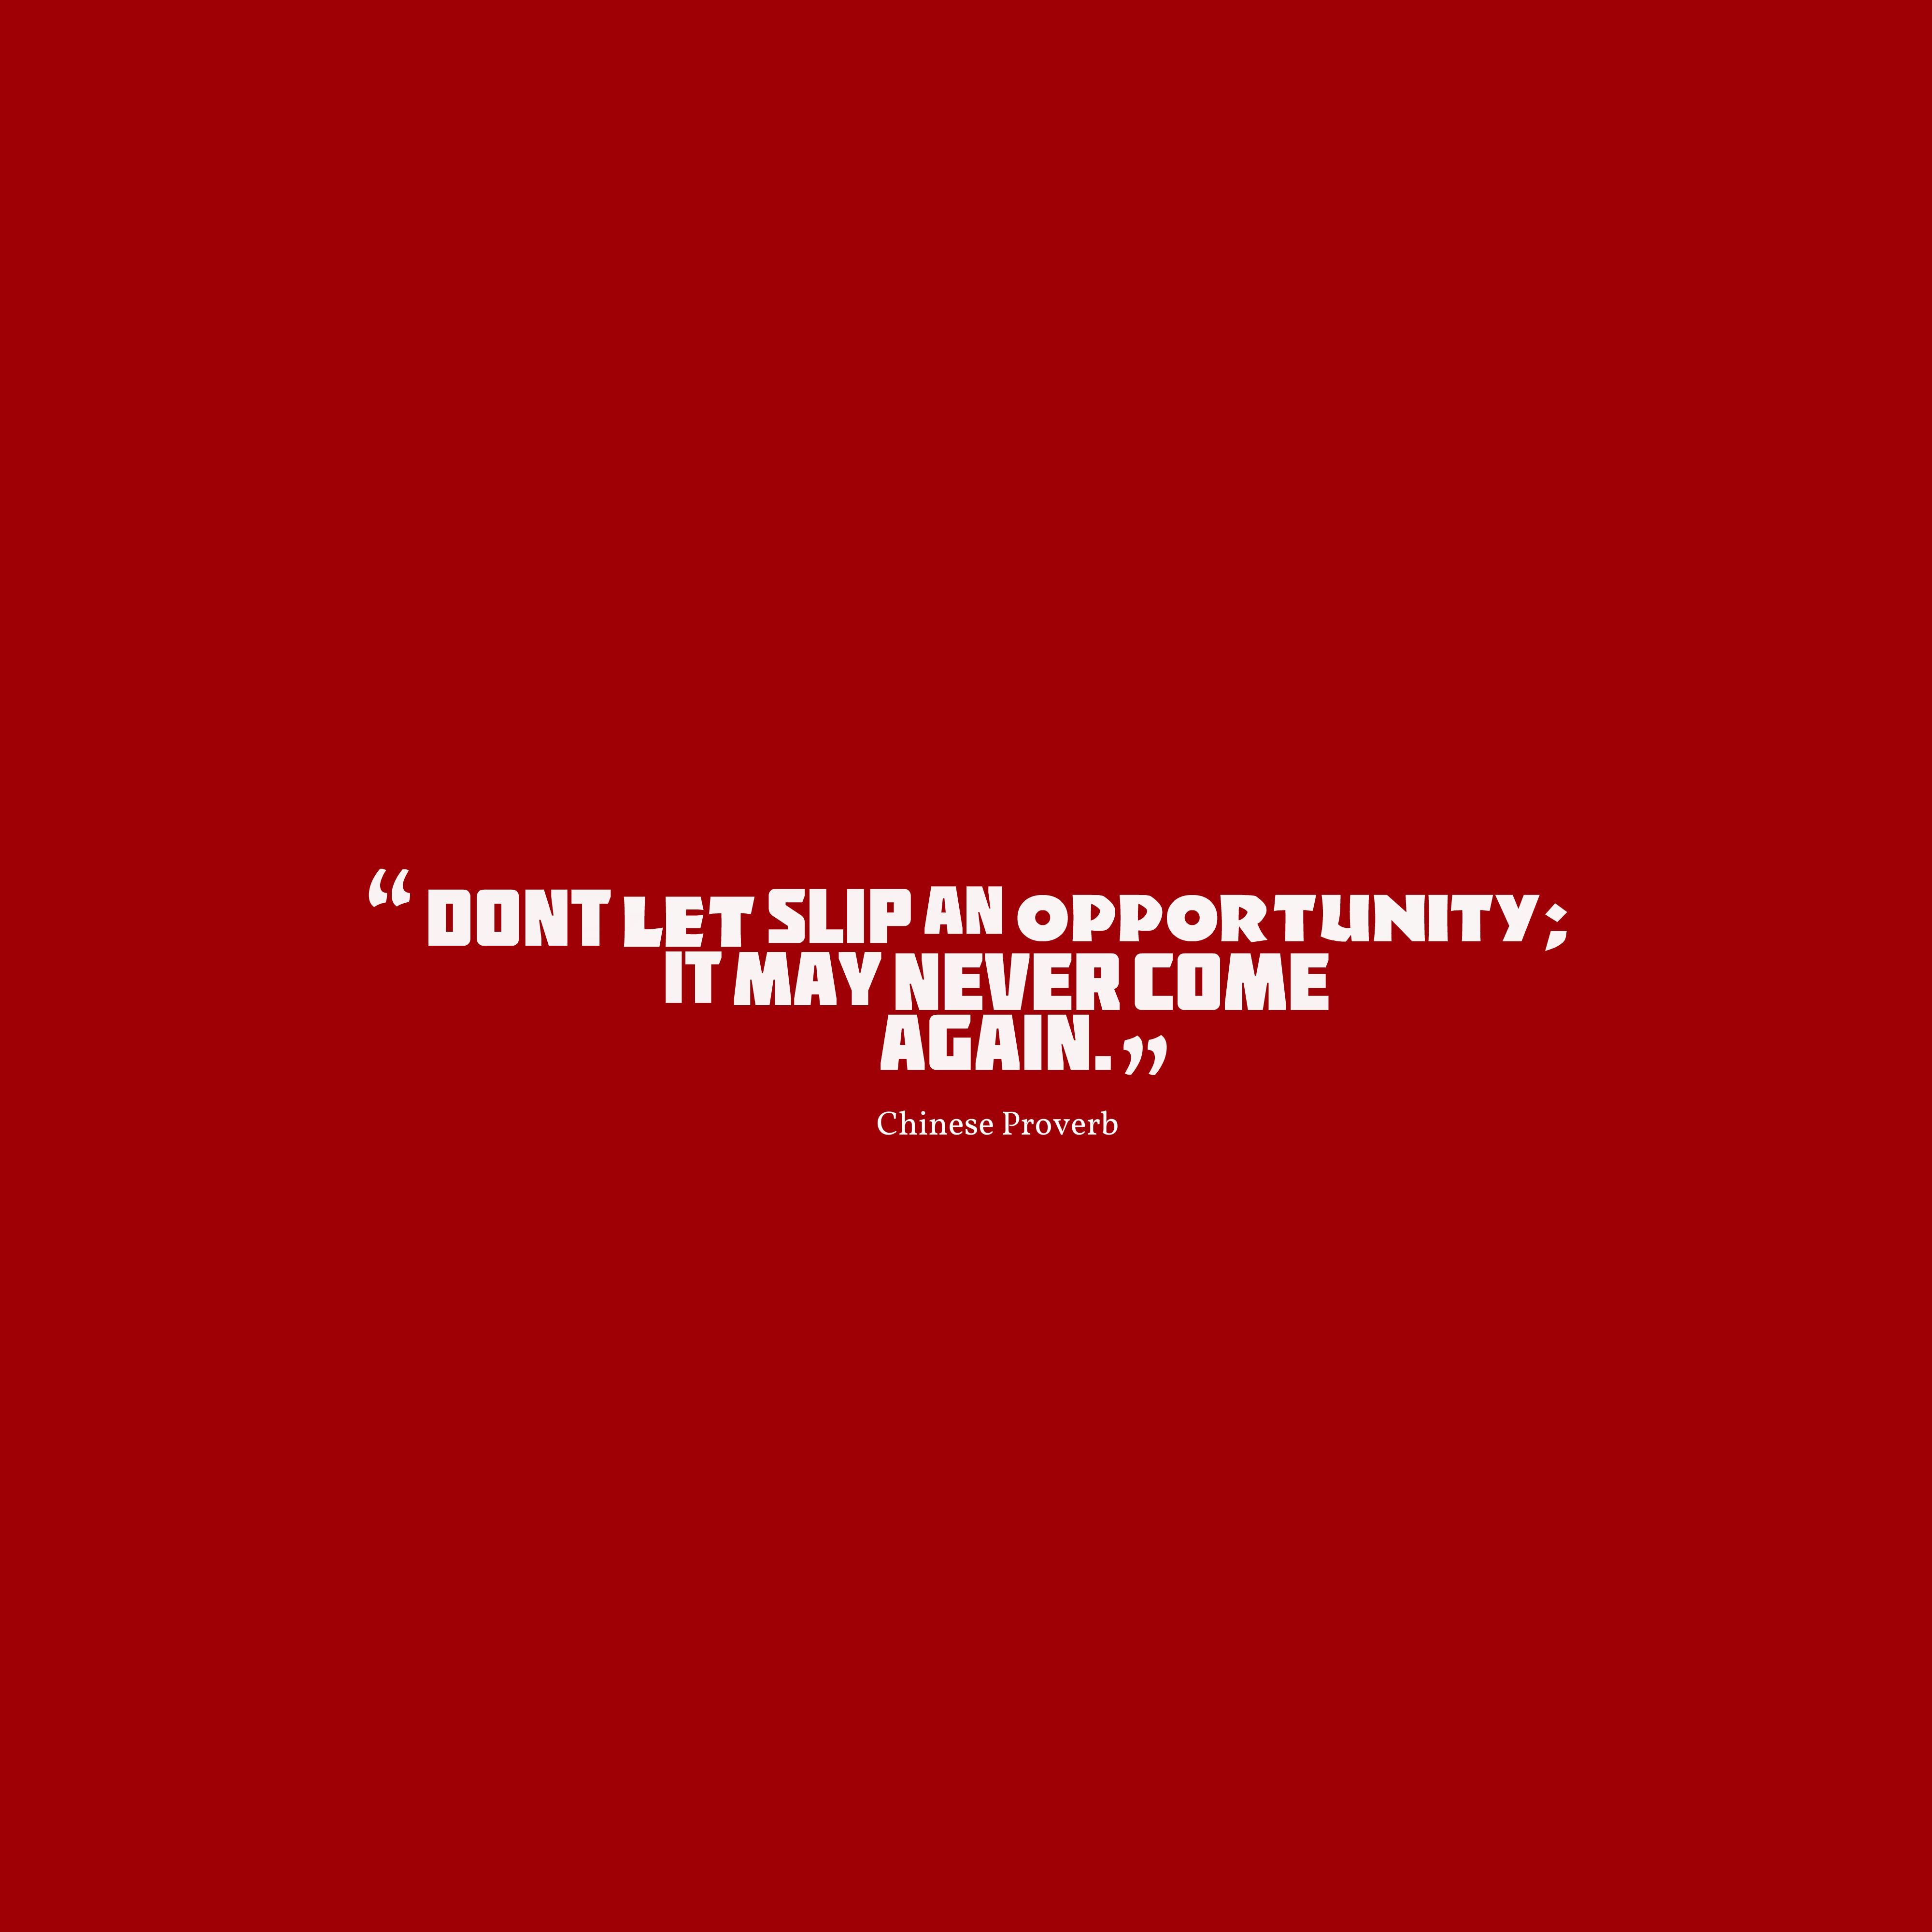 Quotes image of Don't let slip an opportunity; it may never come again.